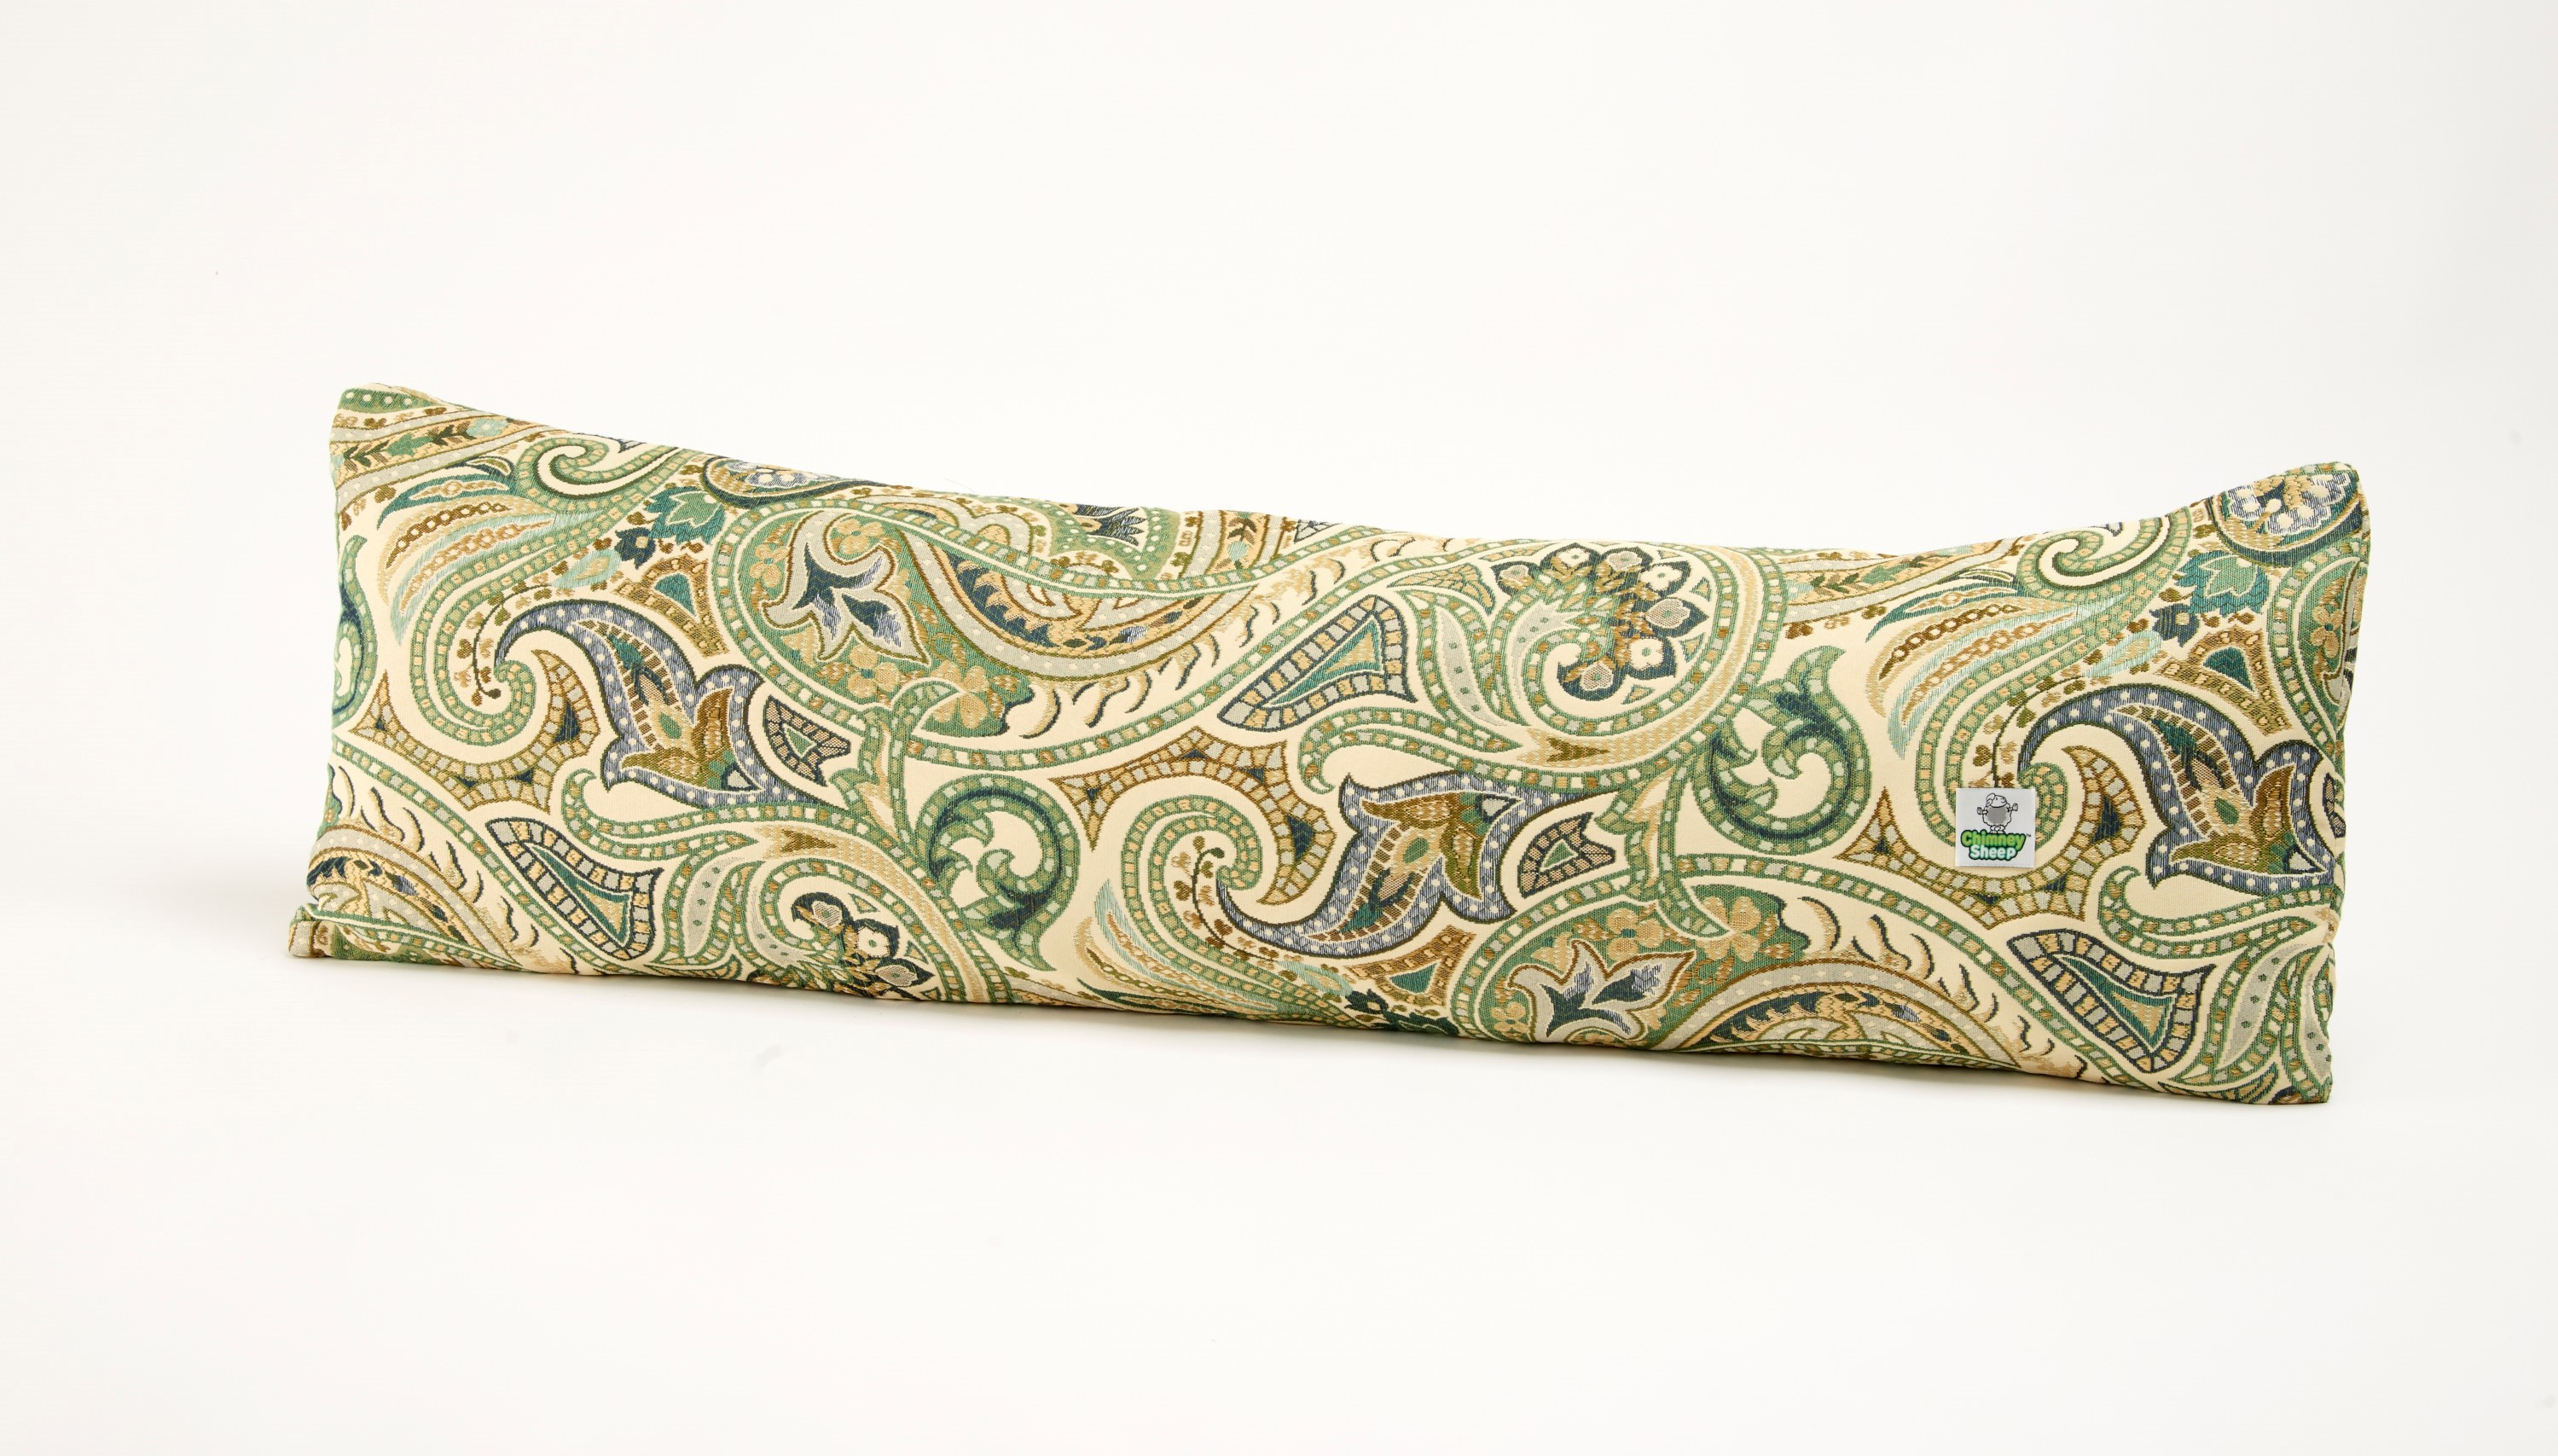 A large door draught excluder filled with Herdwick wool is a robust draft stopper. The cover comprises a paisley swirl of confident greens and blues